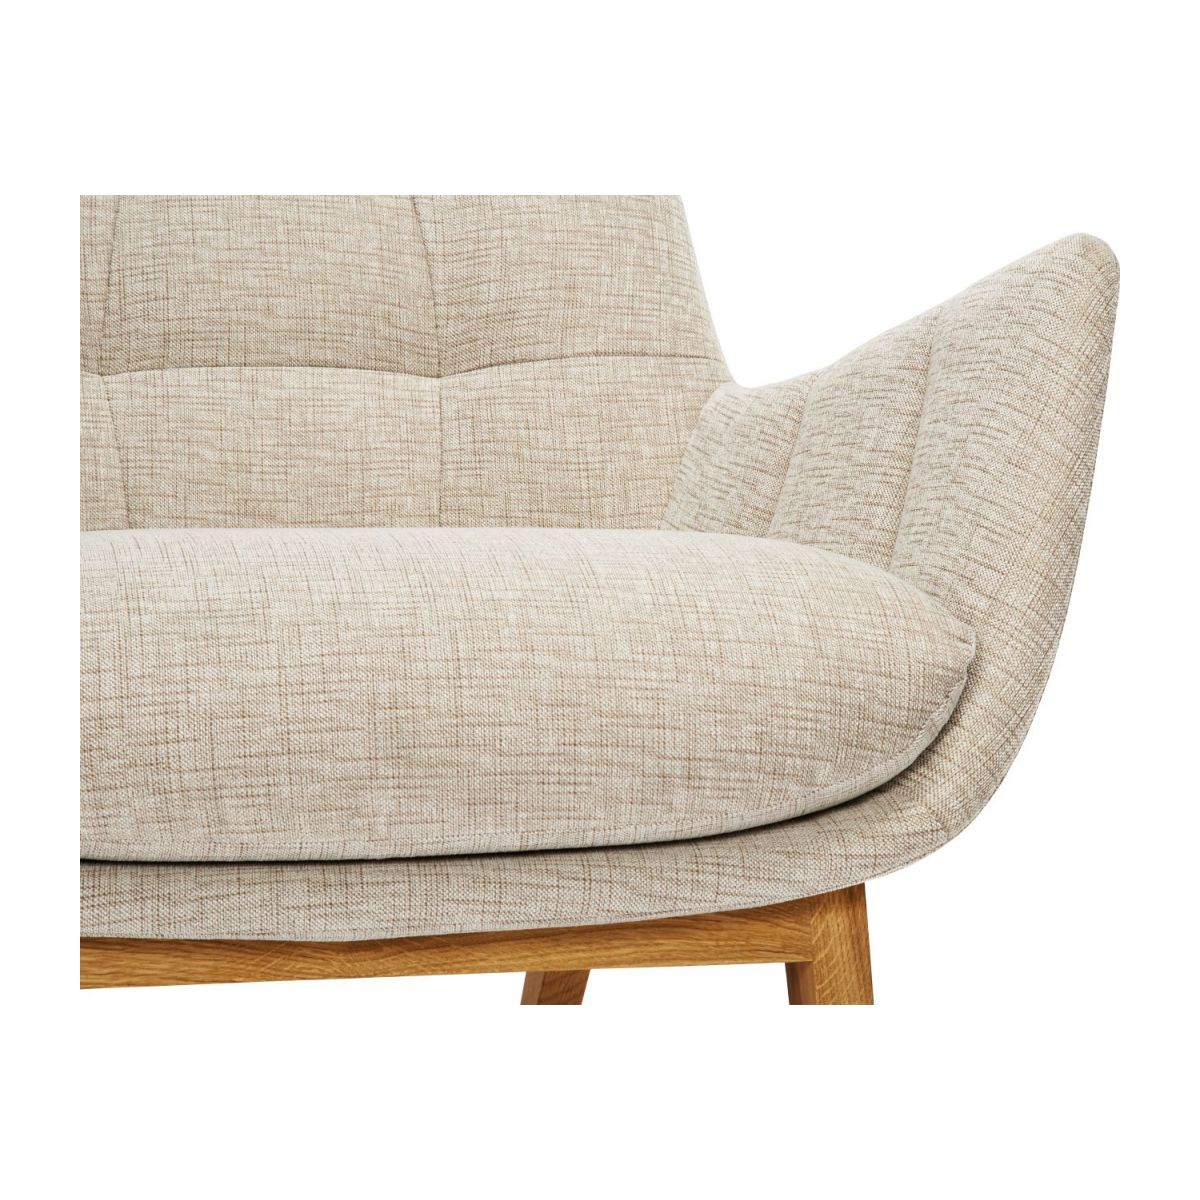 Armchair in Ancio fabric, nature with oak legs n°8